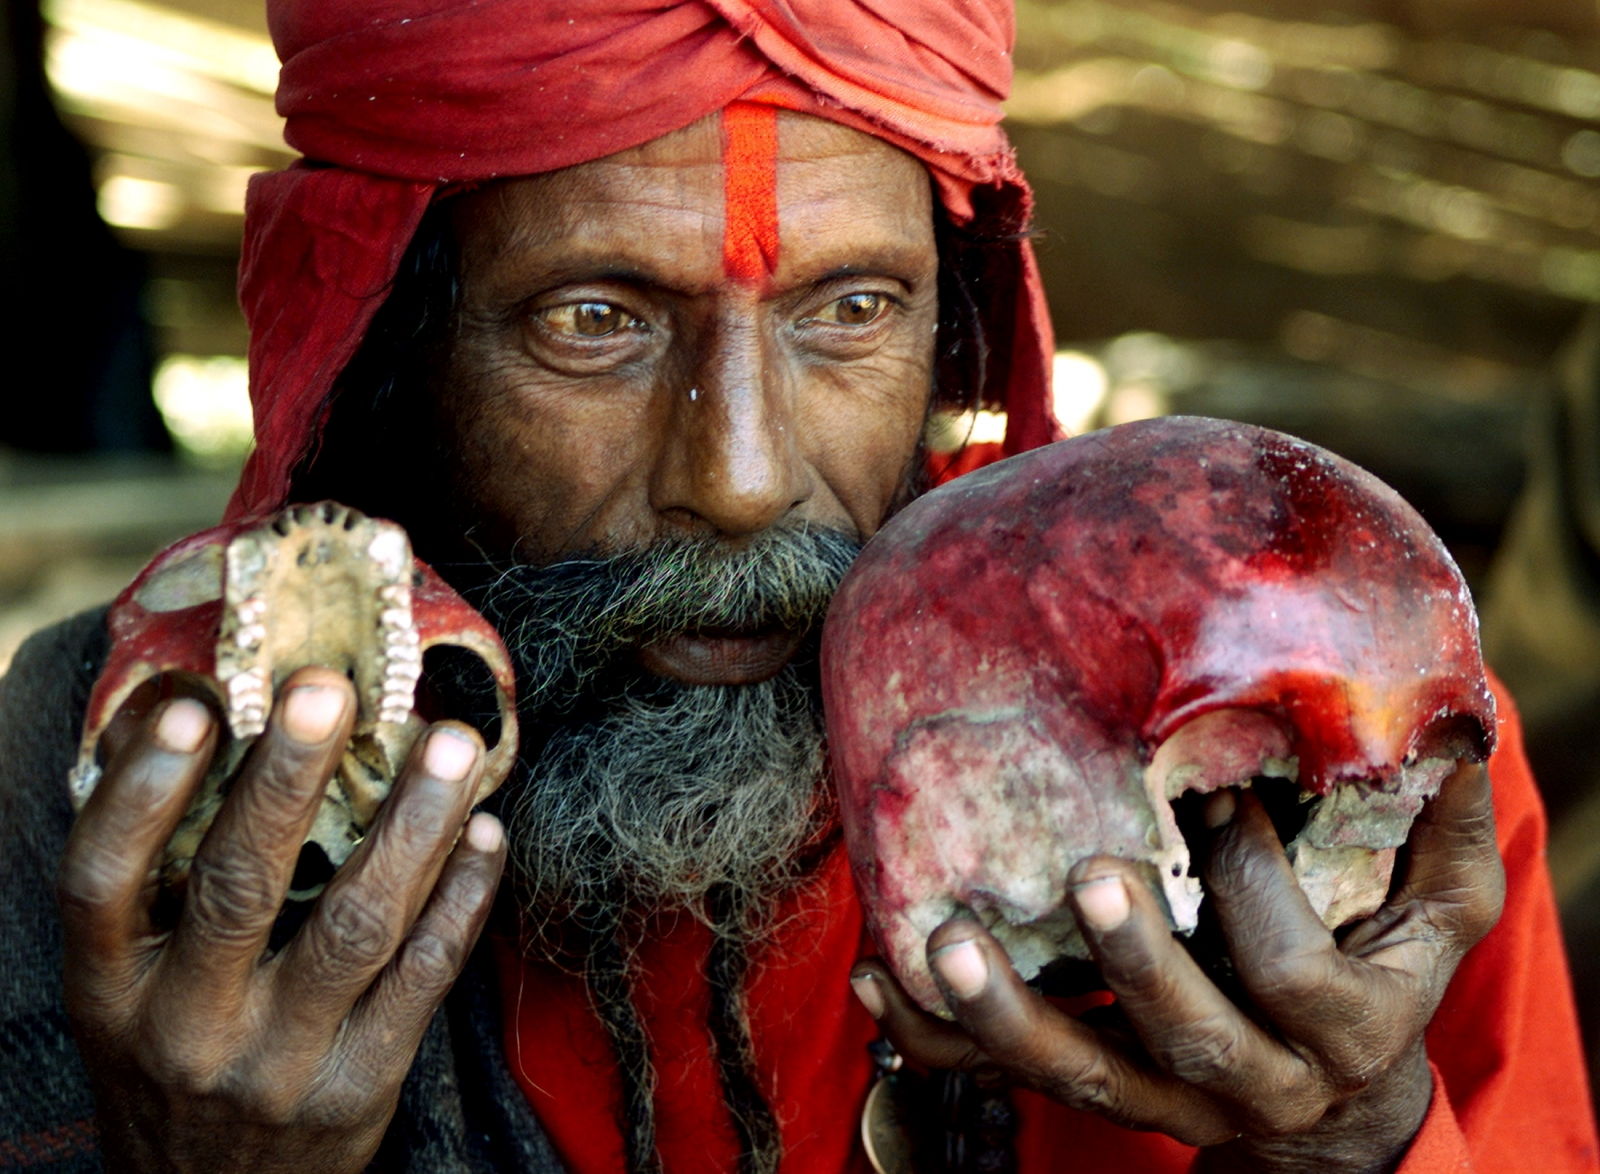 India Black Magic tantrik sadhu Hindu